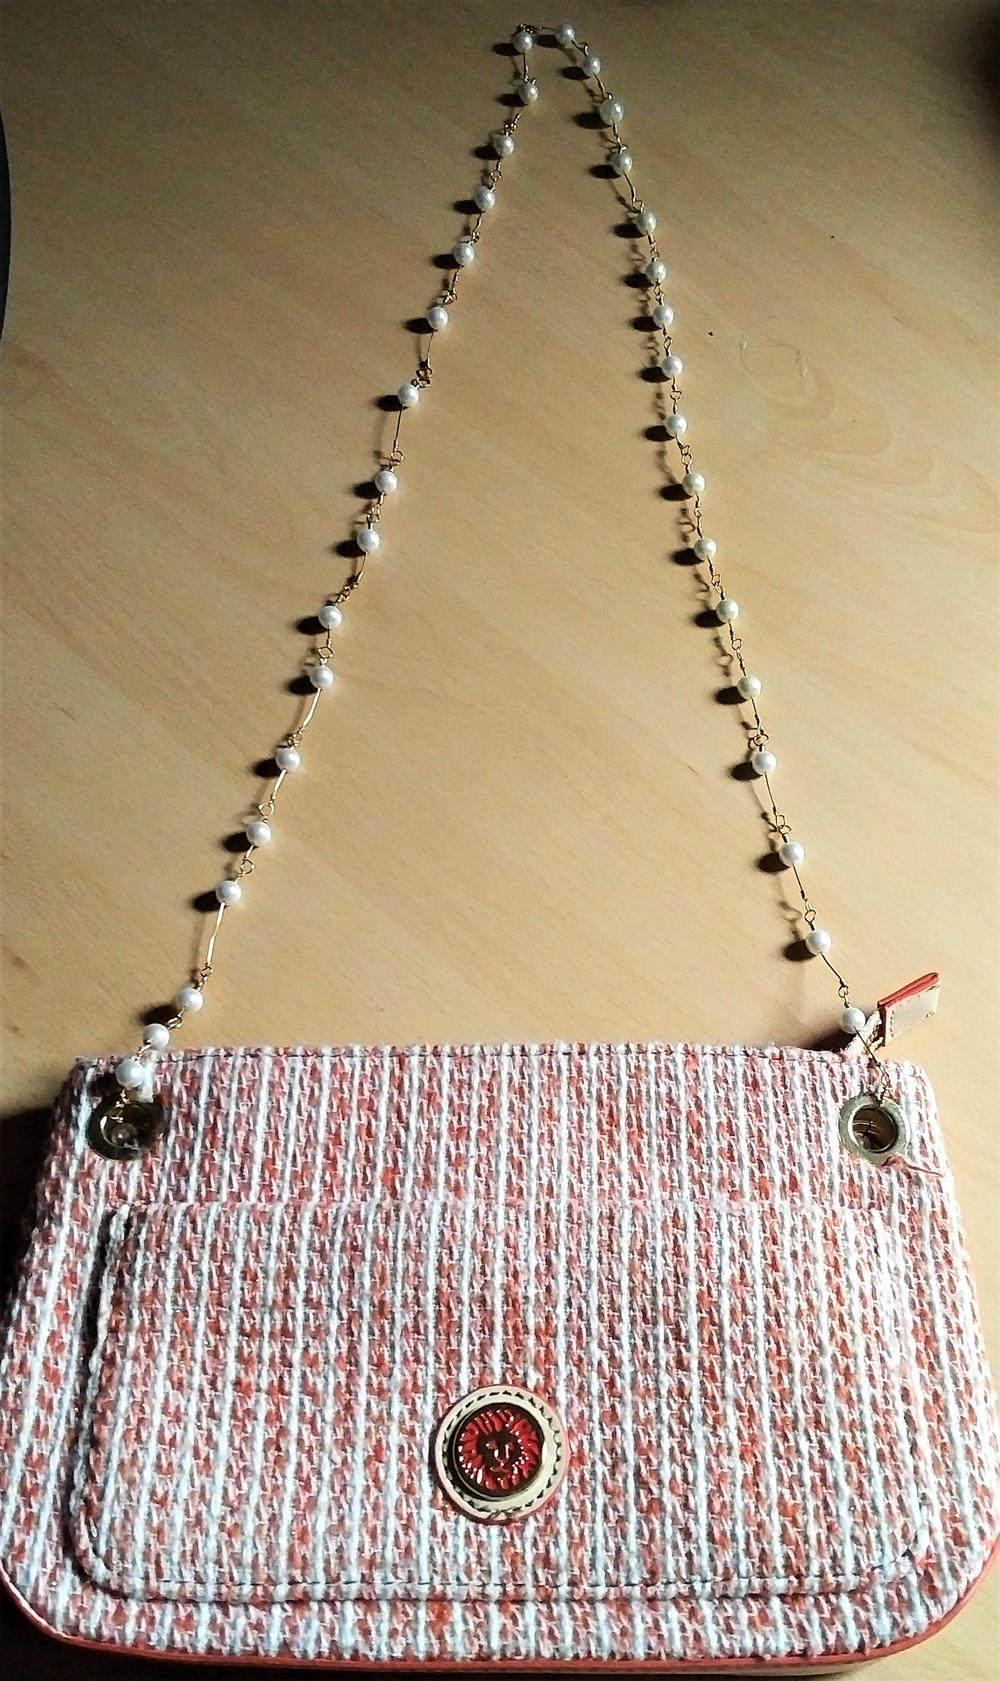 Upcycled Faux Pearl Necklace into Purse Handle | FaveCrafts.com